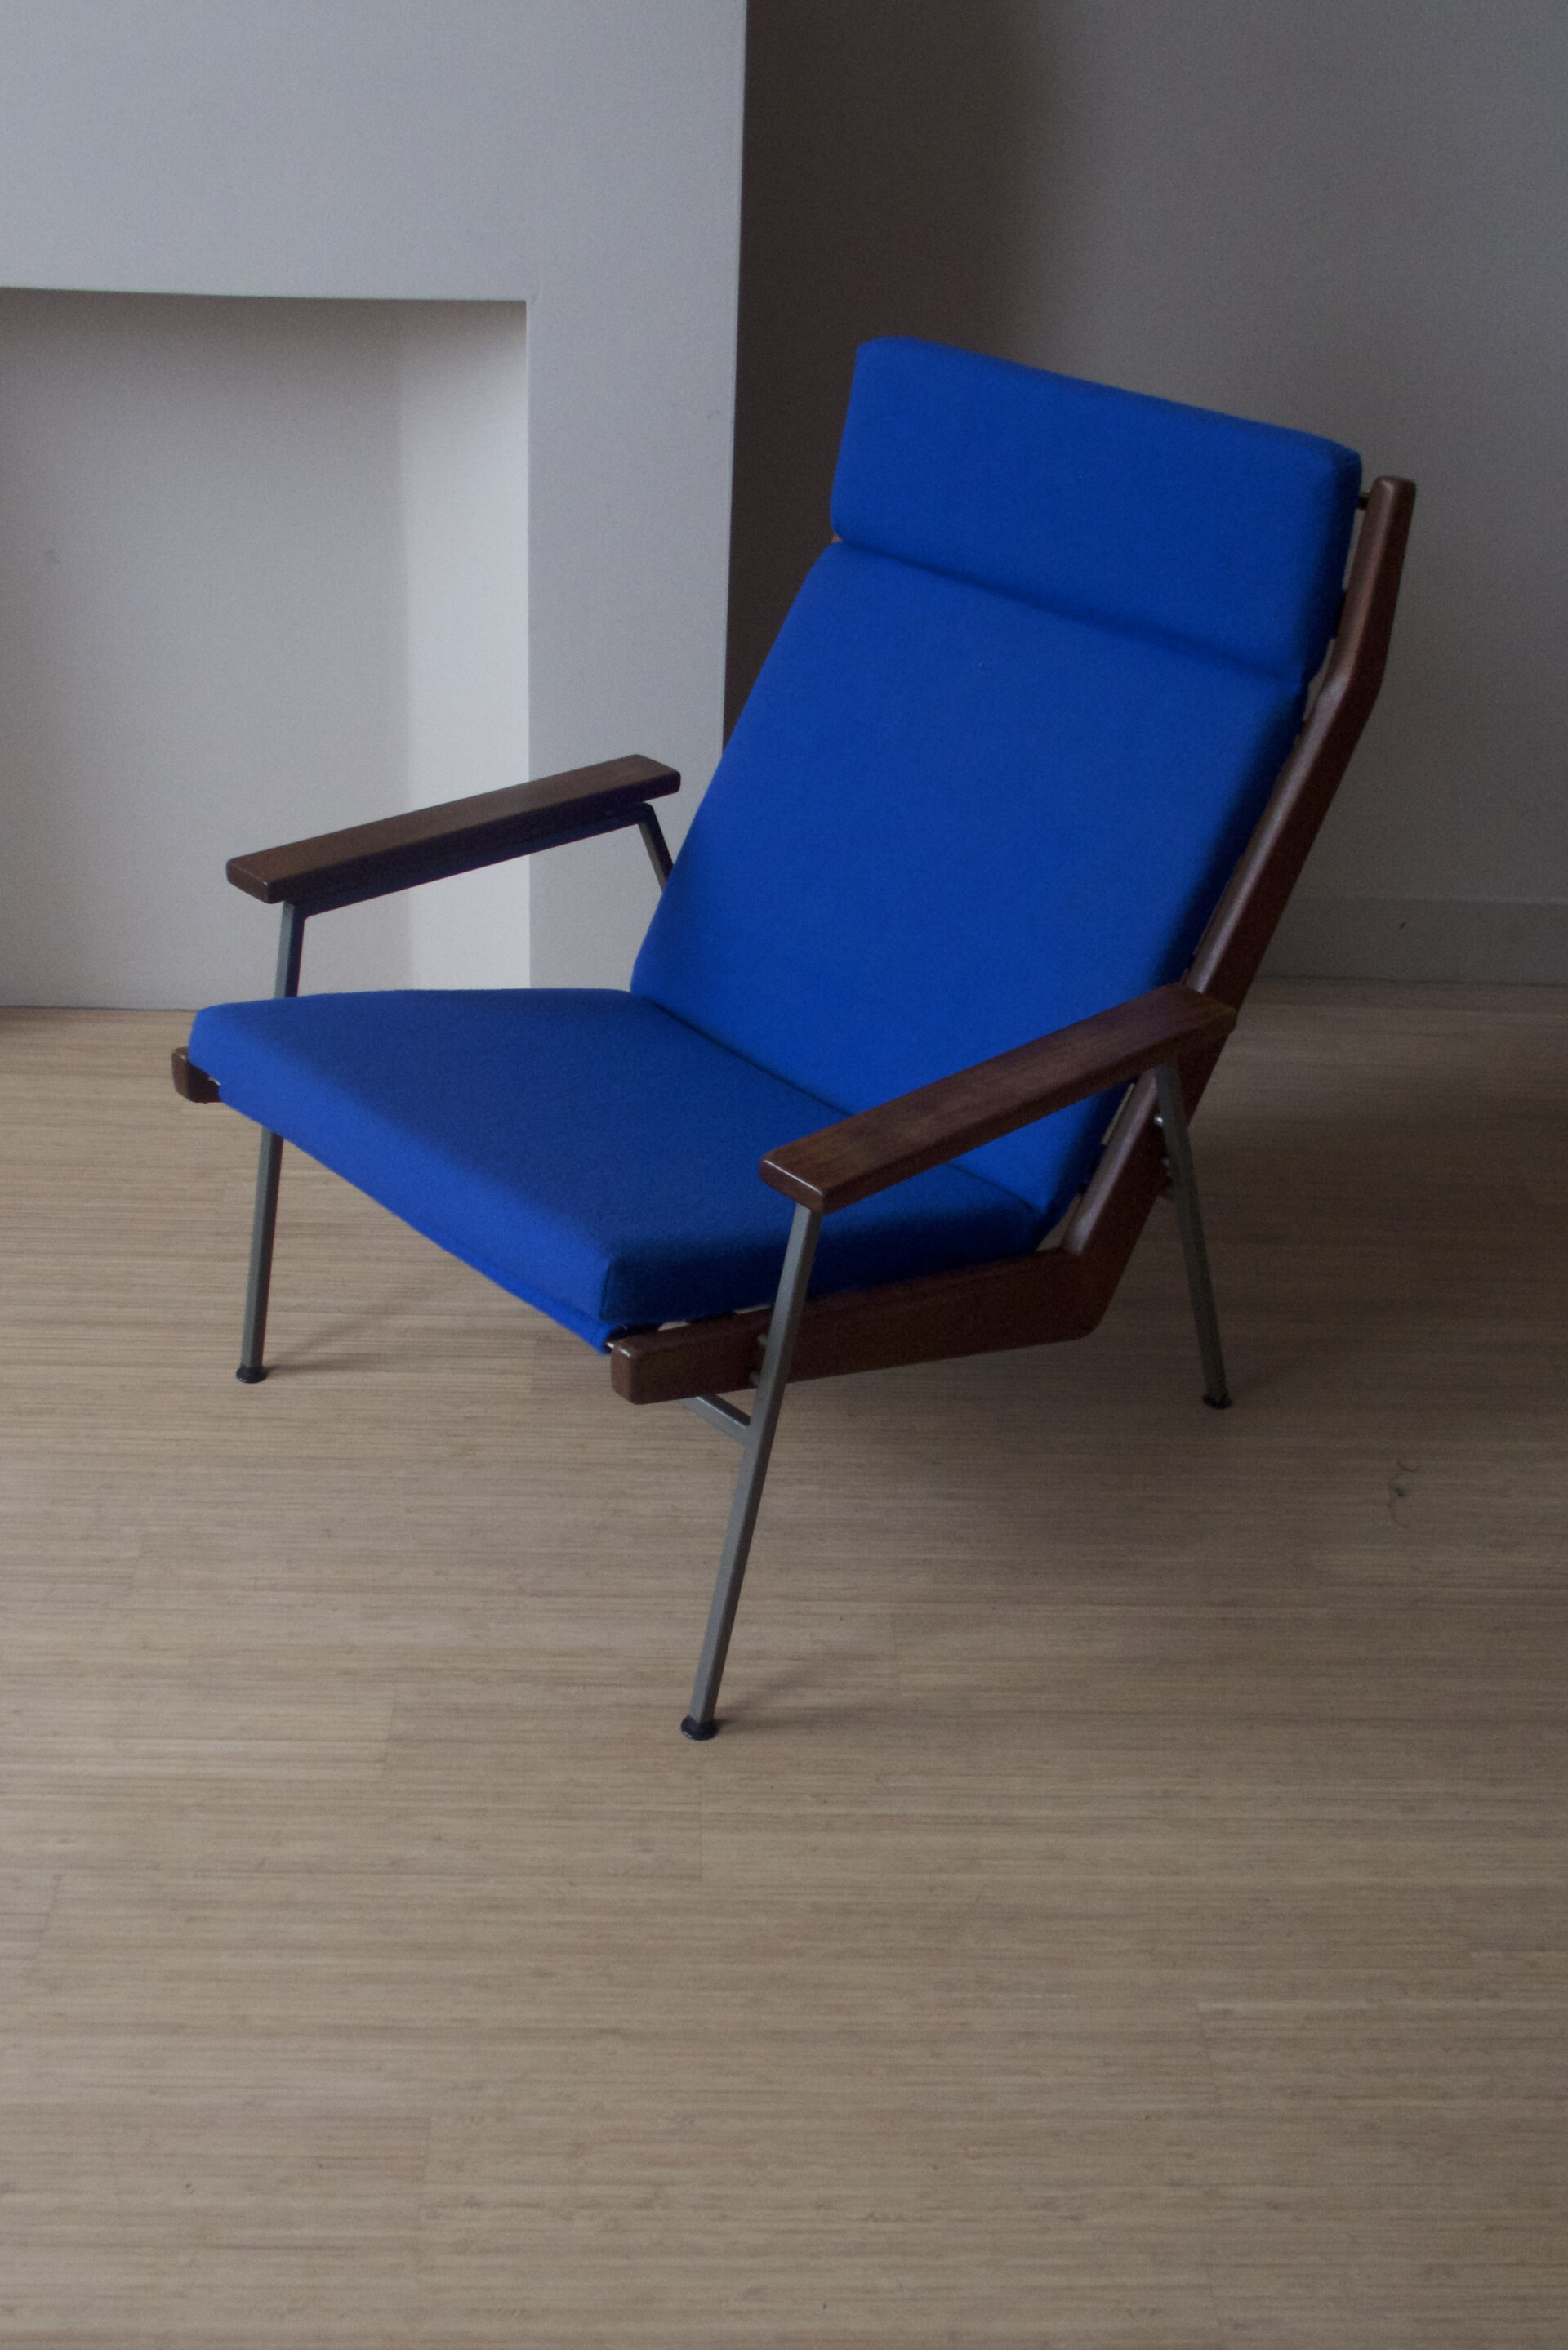 Rob Parry Fauteuils.Vintage Dutch Design Originele Comfortabele Fauteuil Bekleding Blauwe Ploegwool Rob Parry Model Lotus 1968